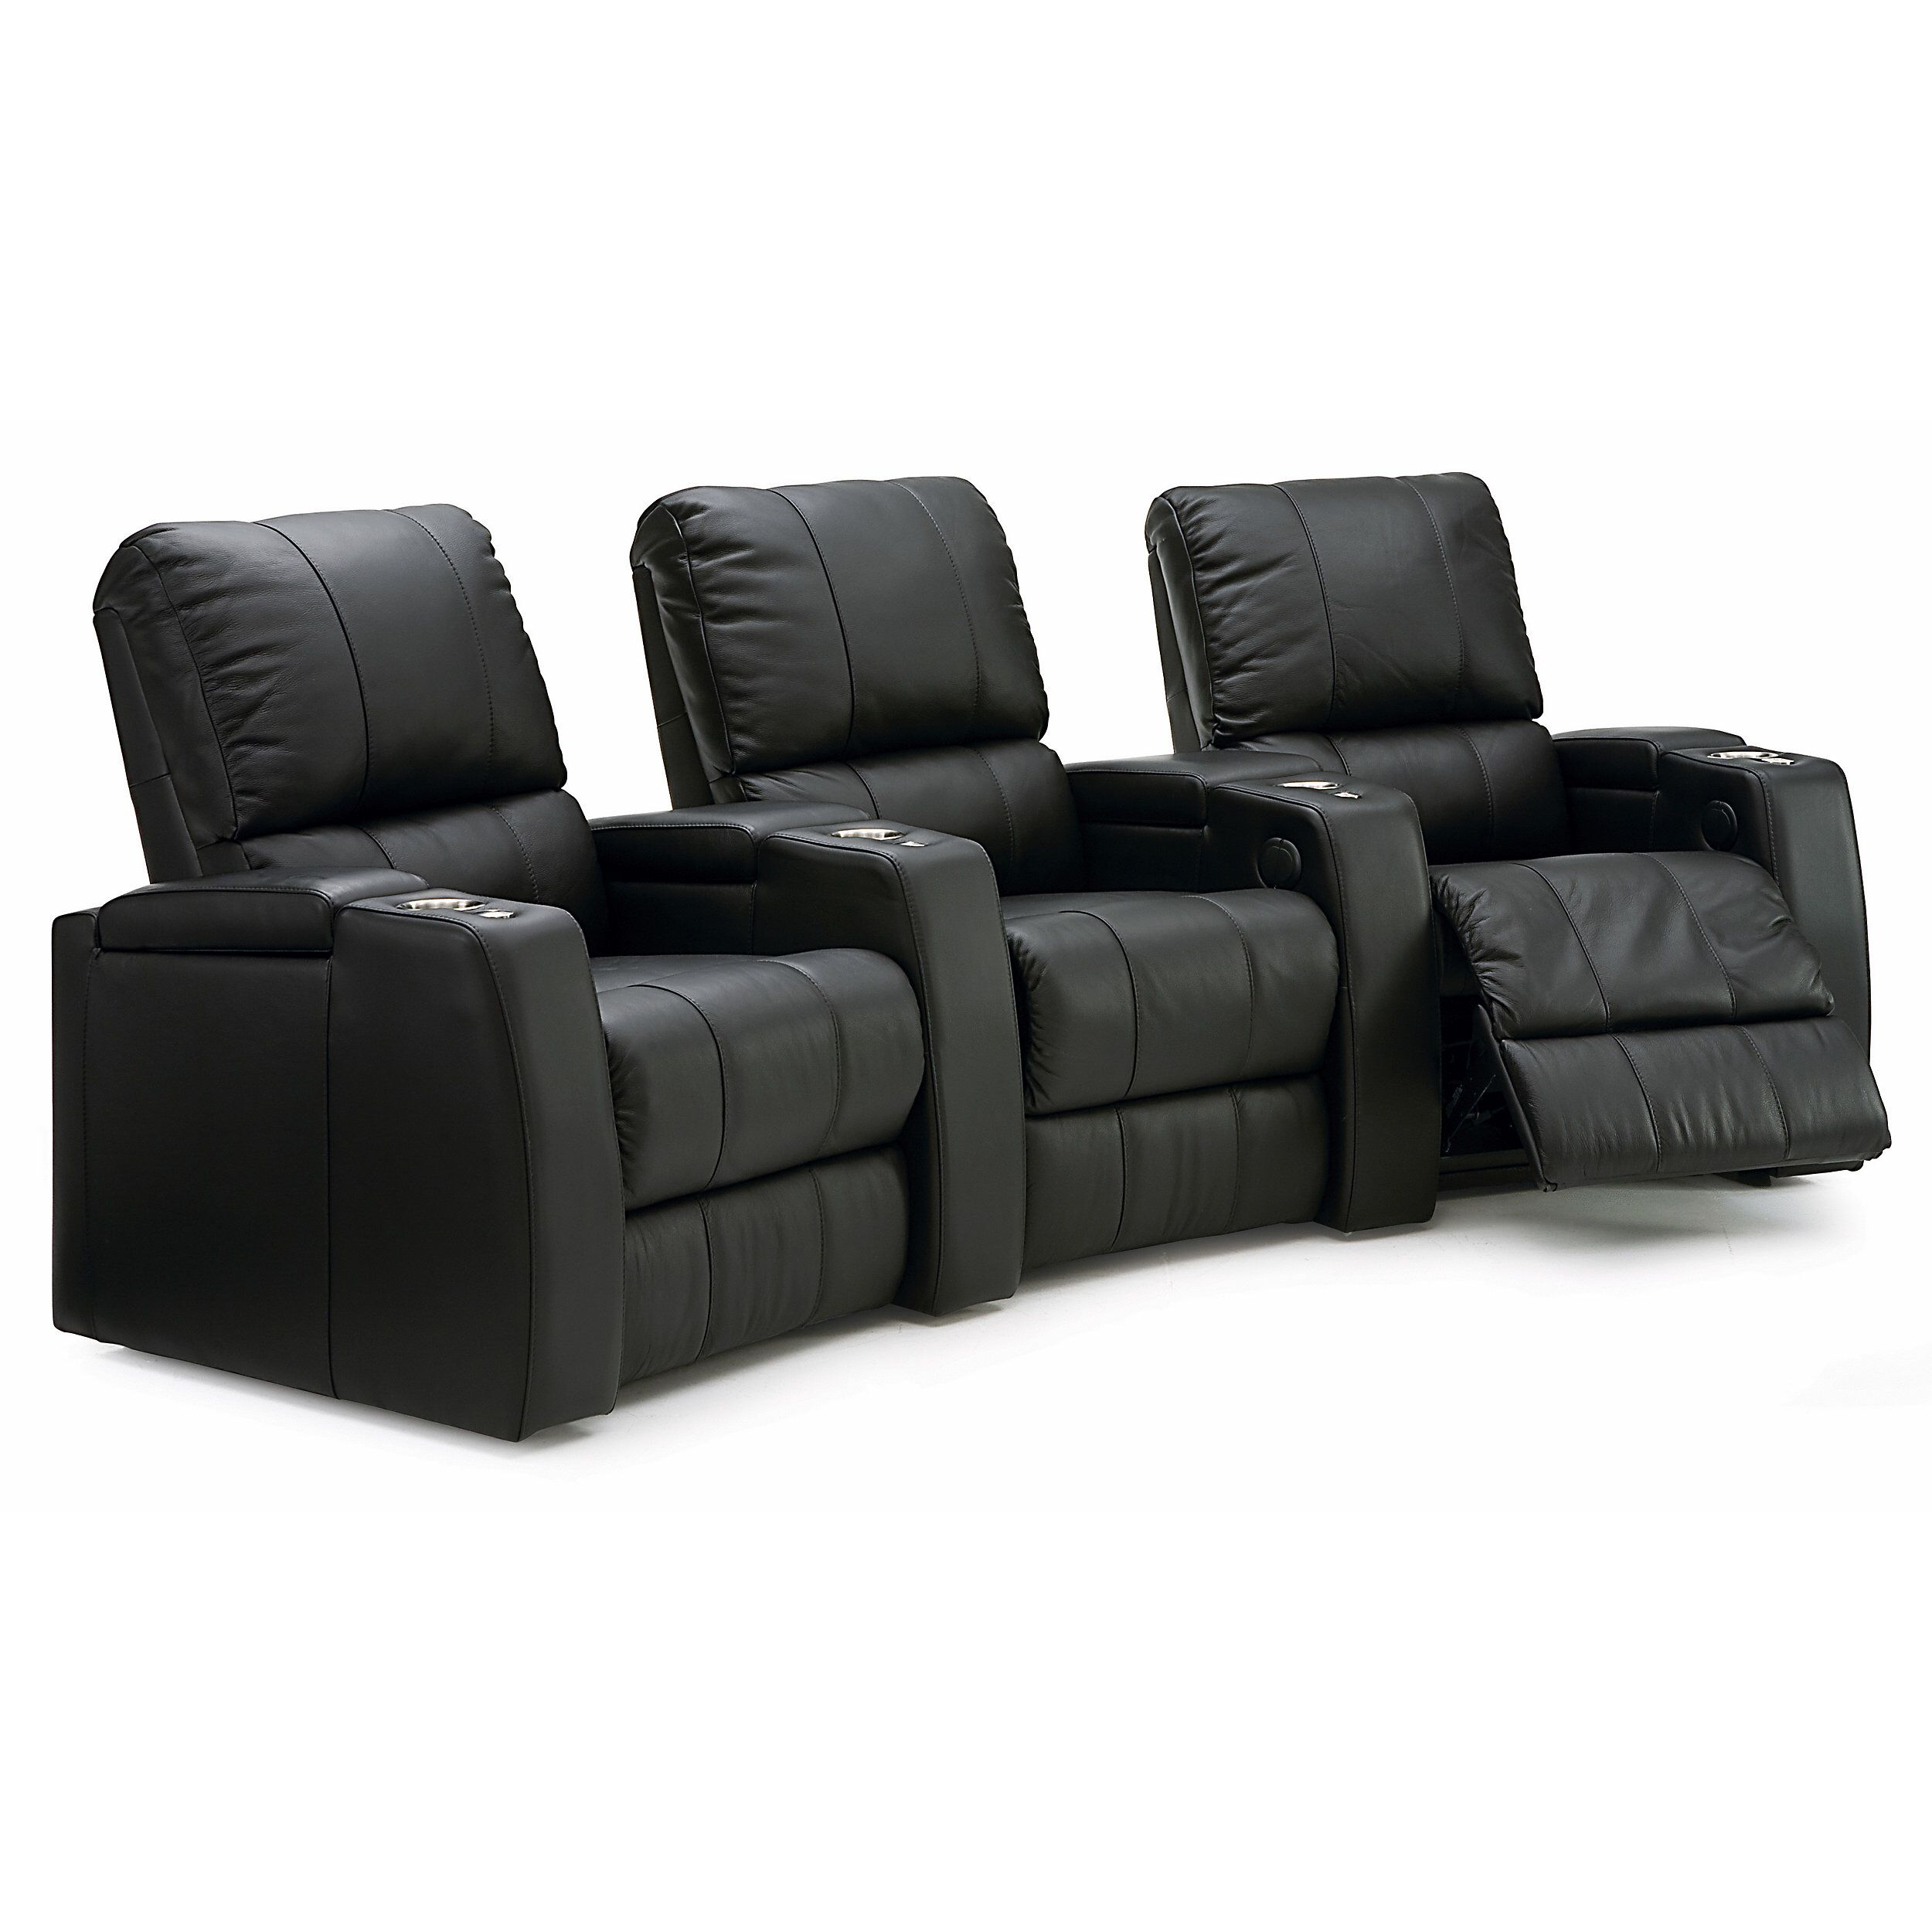 Home Theater Seating Seats Video Sofa Seat Cushions